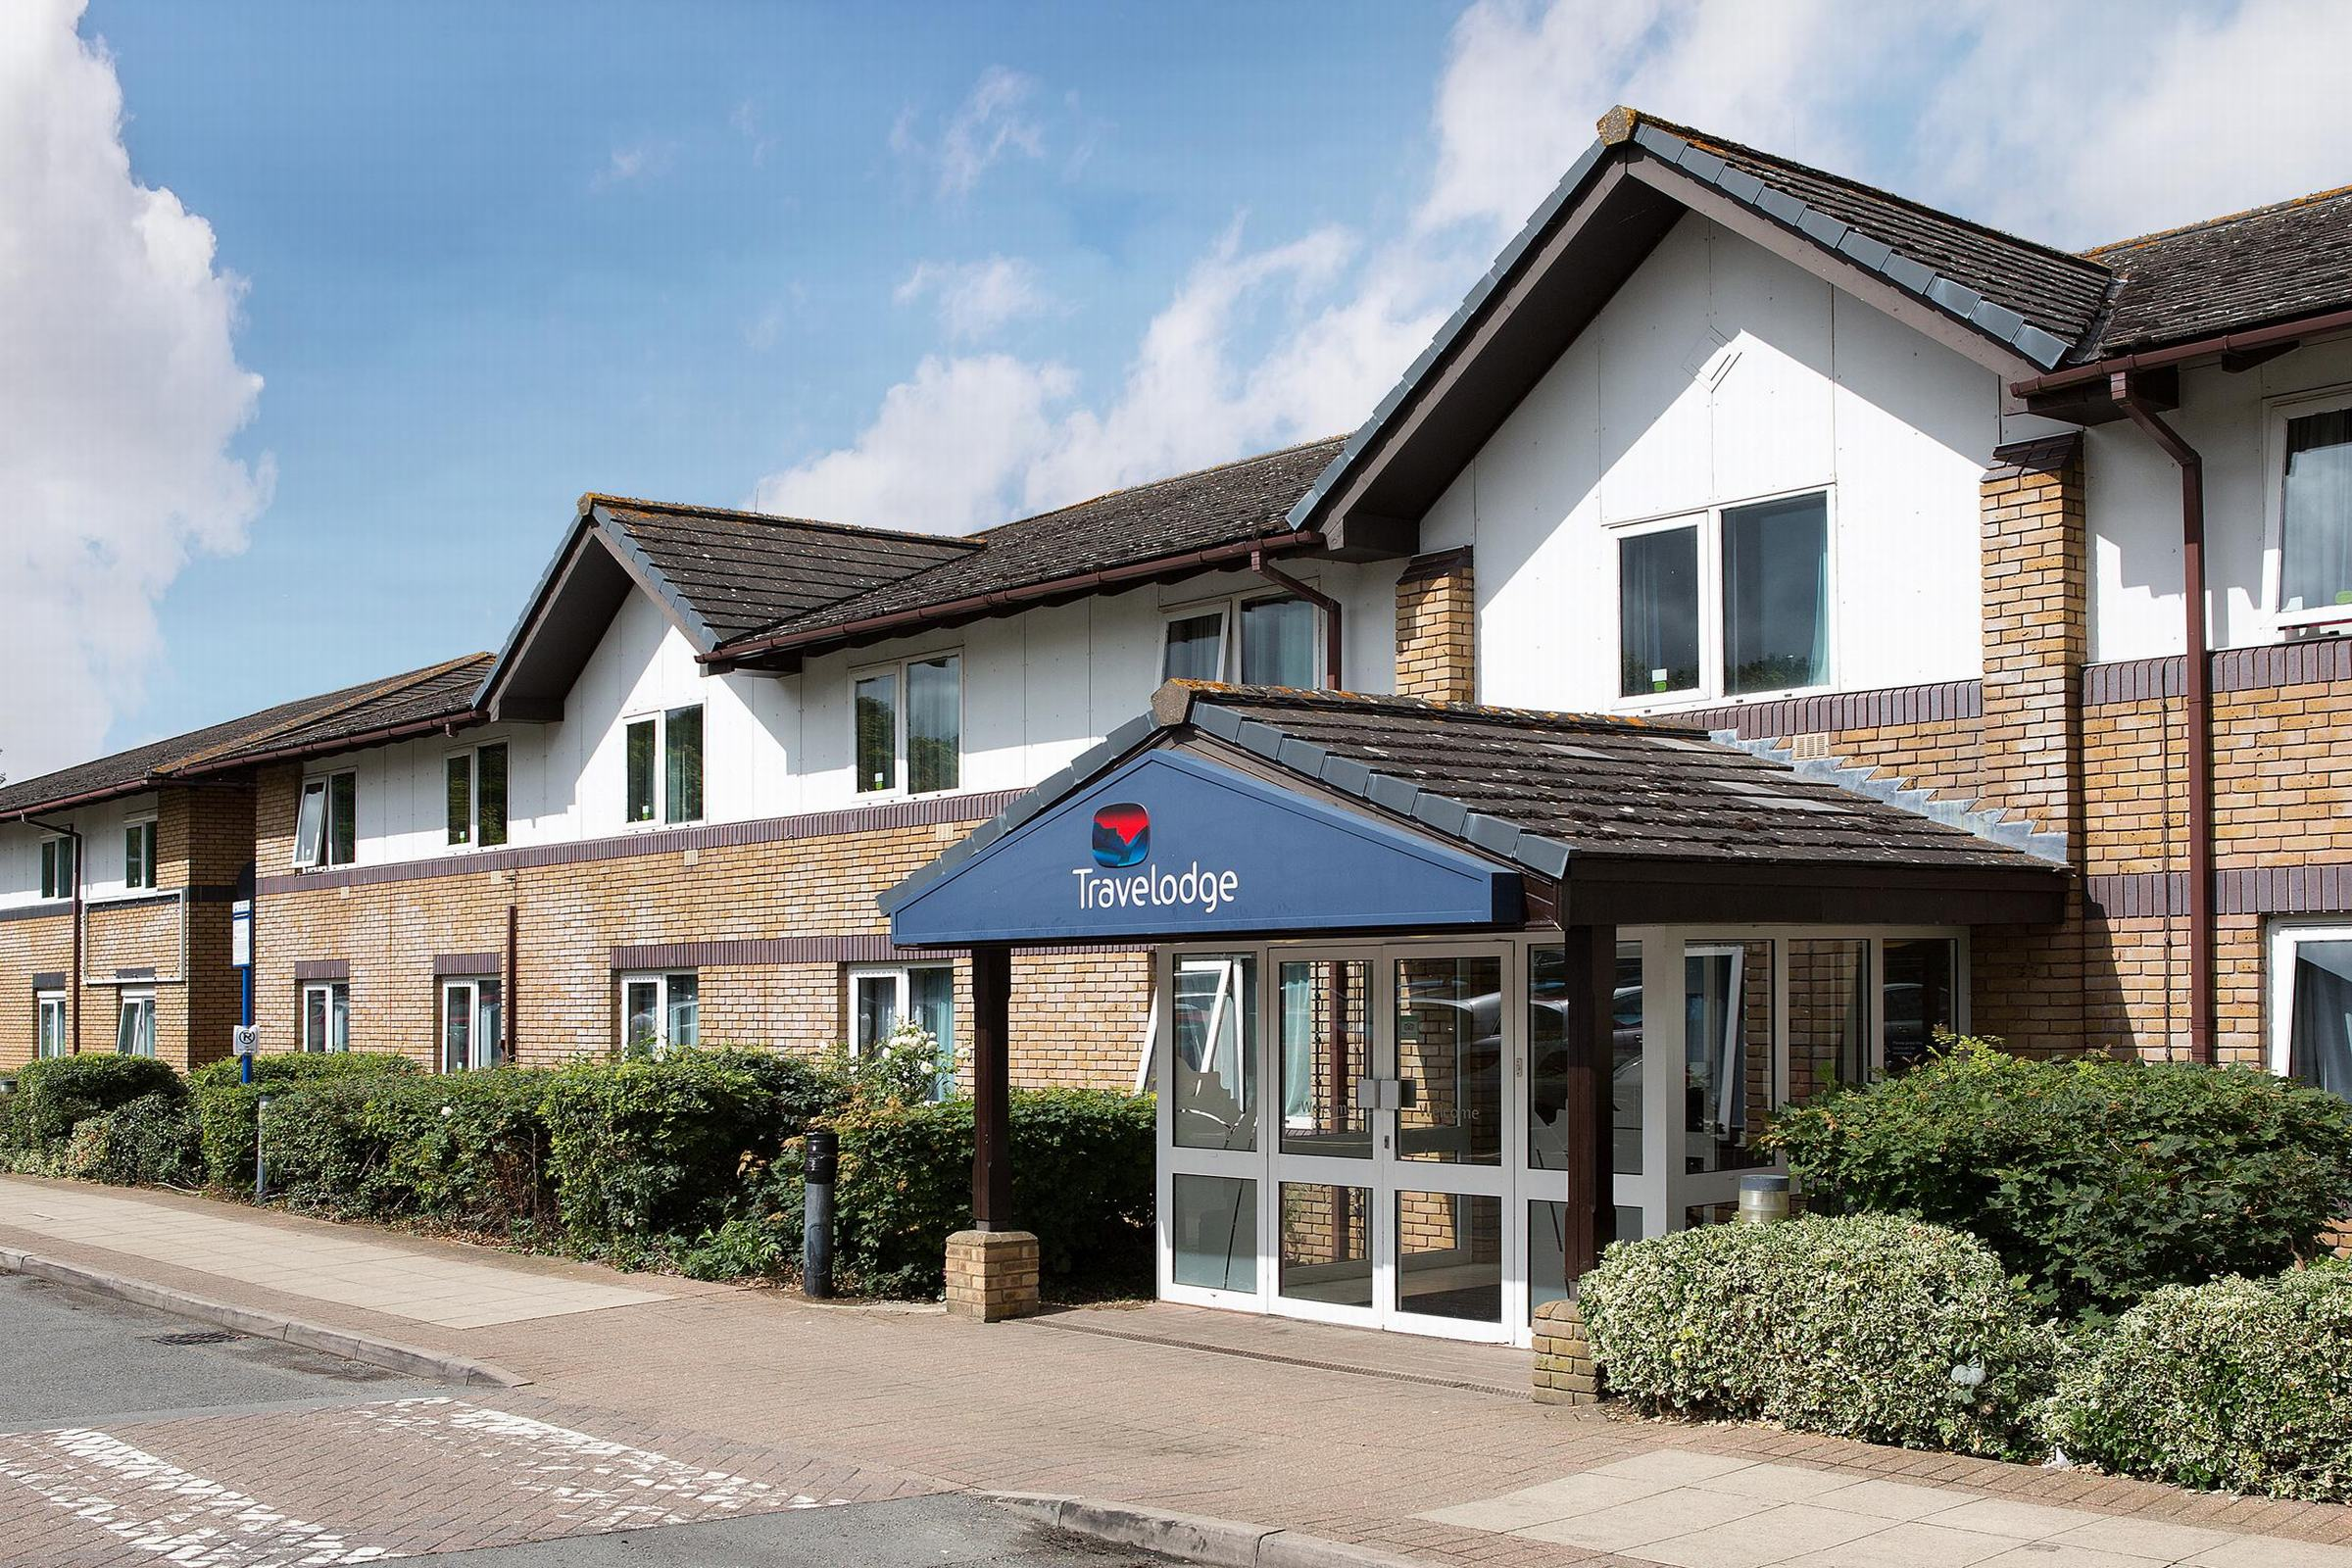 Travelodge Bicester Cherwell Valley, Oxfordshire